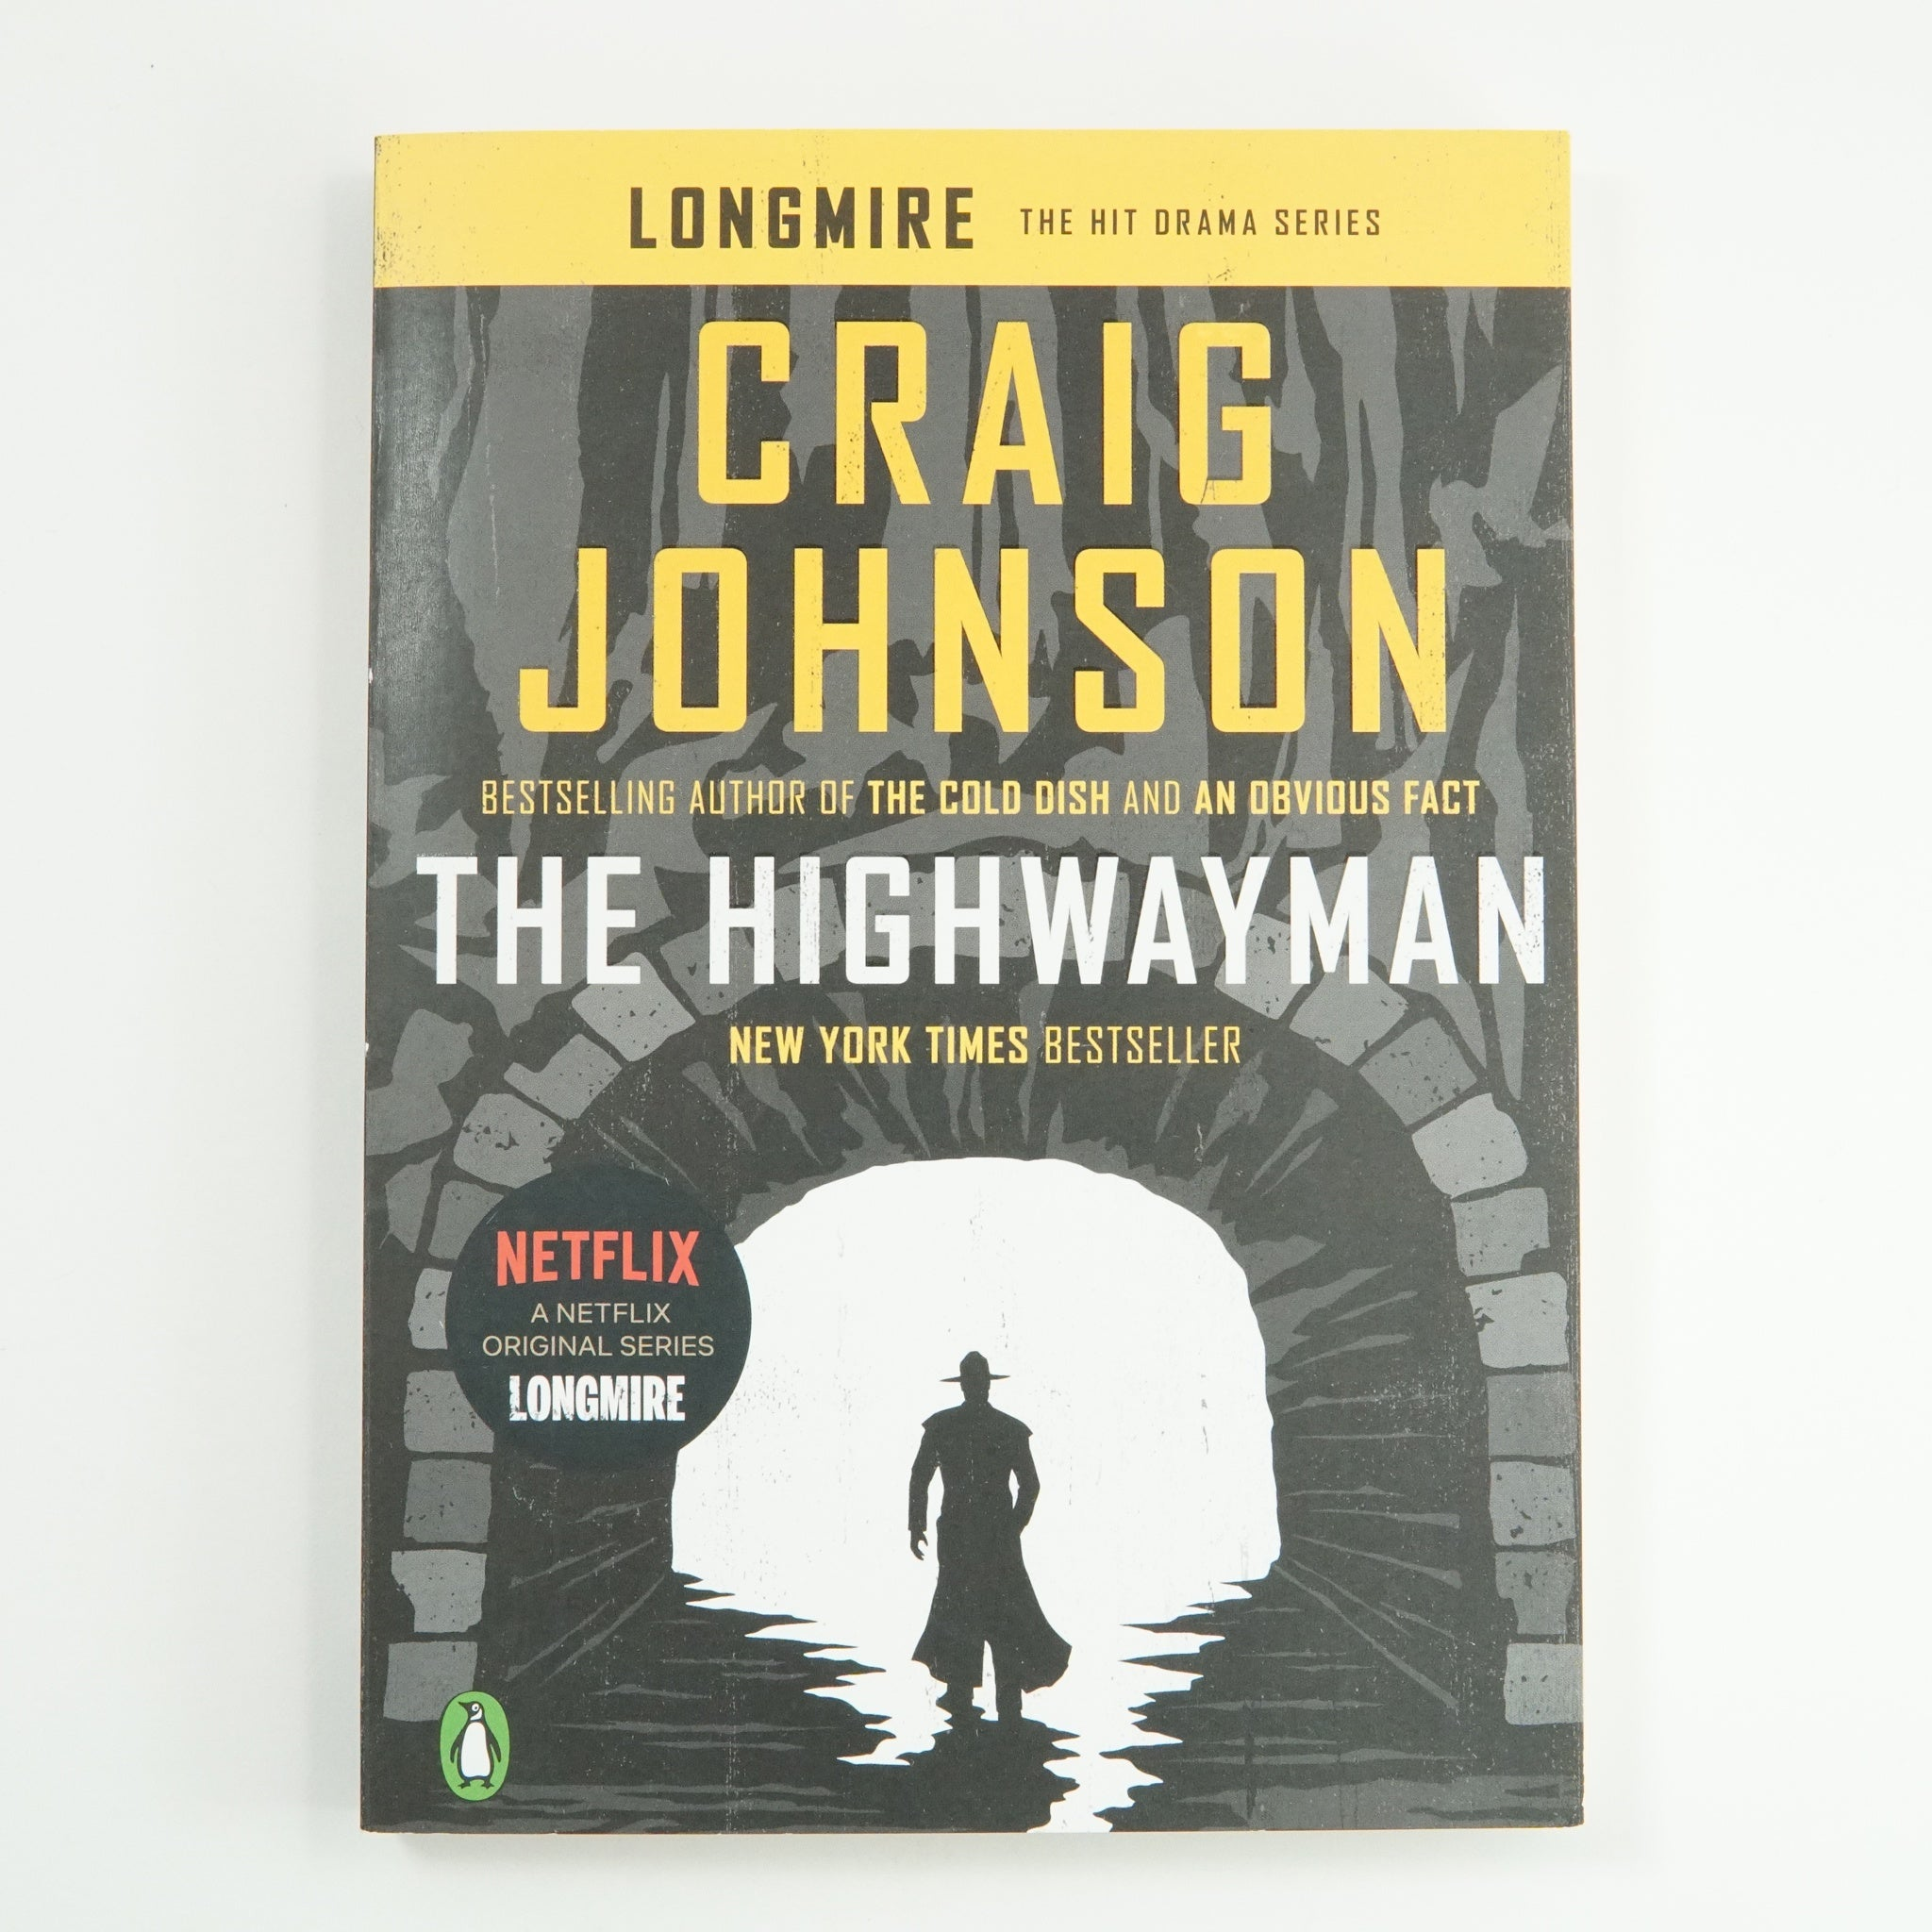 BK 5 HIGHWAYMAN BY CRAIG JOHNSON